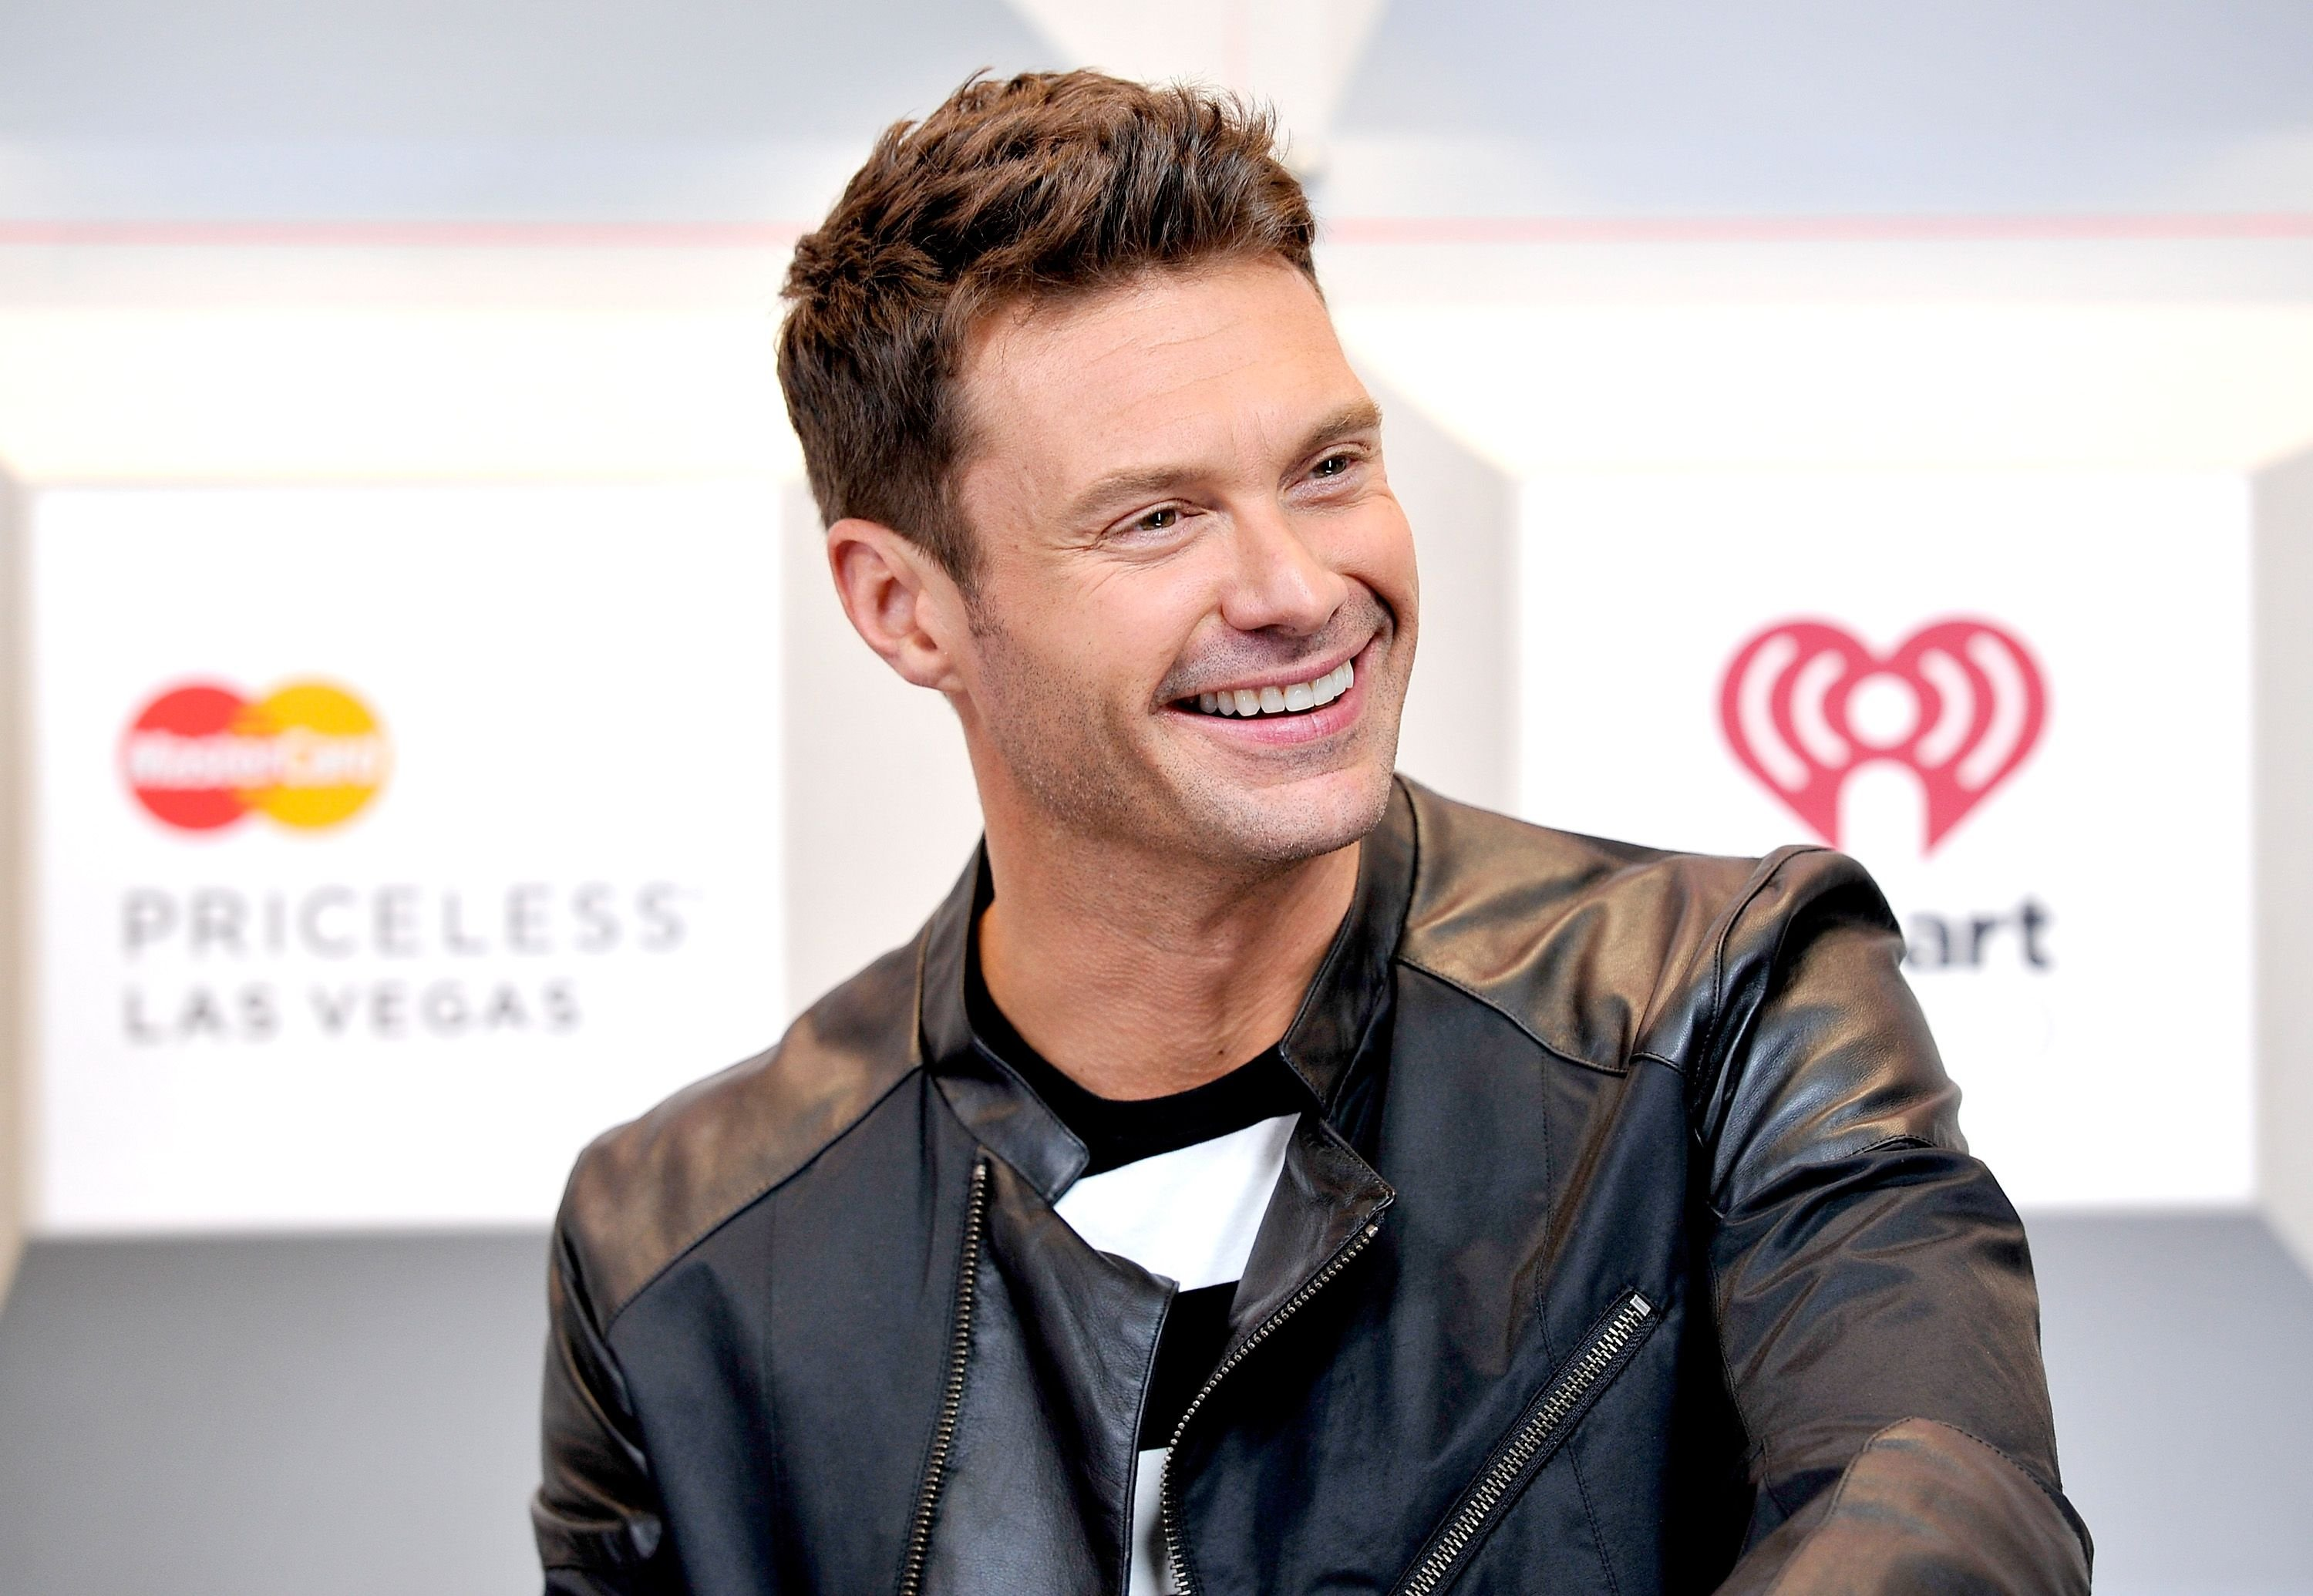 Ryan Seacrest at the iHeartRadio Music Festival on September 19, 2014, in Las Vegas, Nevada | Photo: David Becker/Getty Images